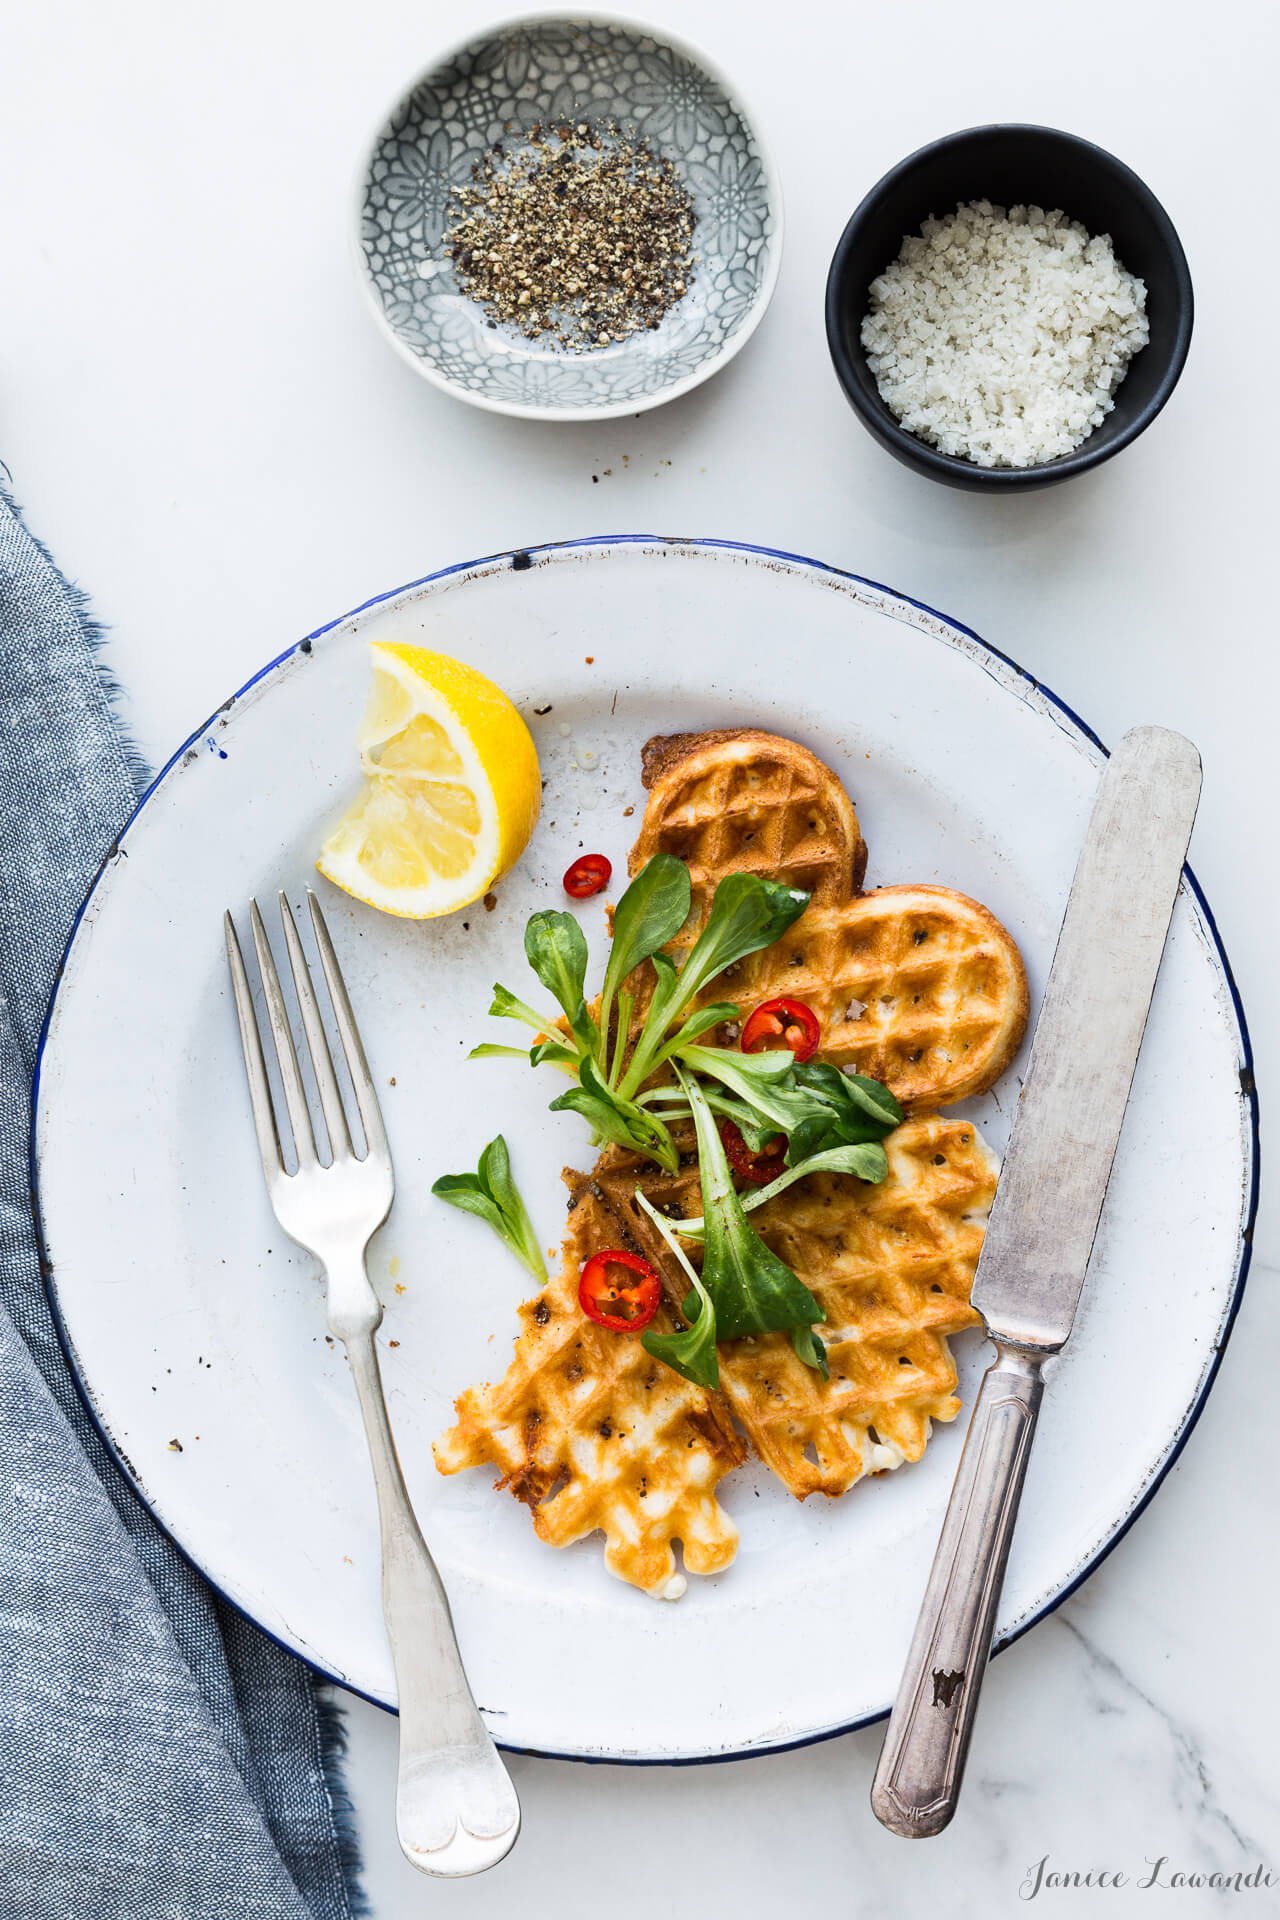 Cheese waffles for brunch